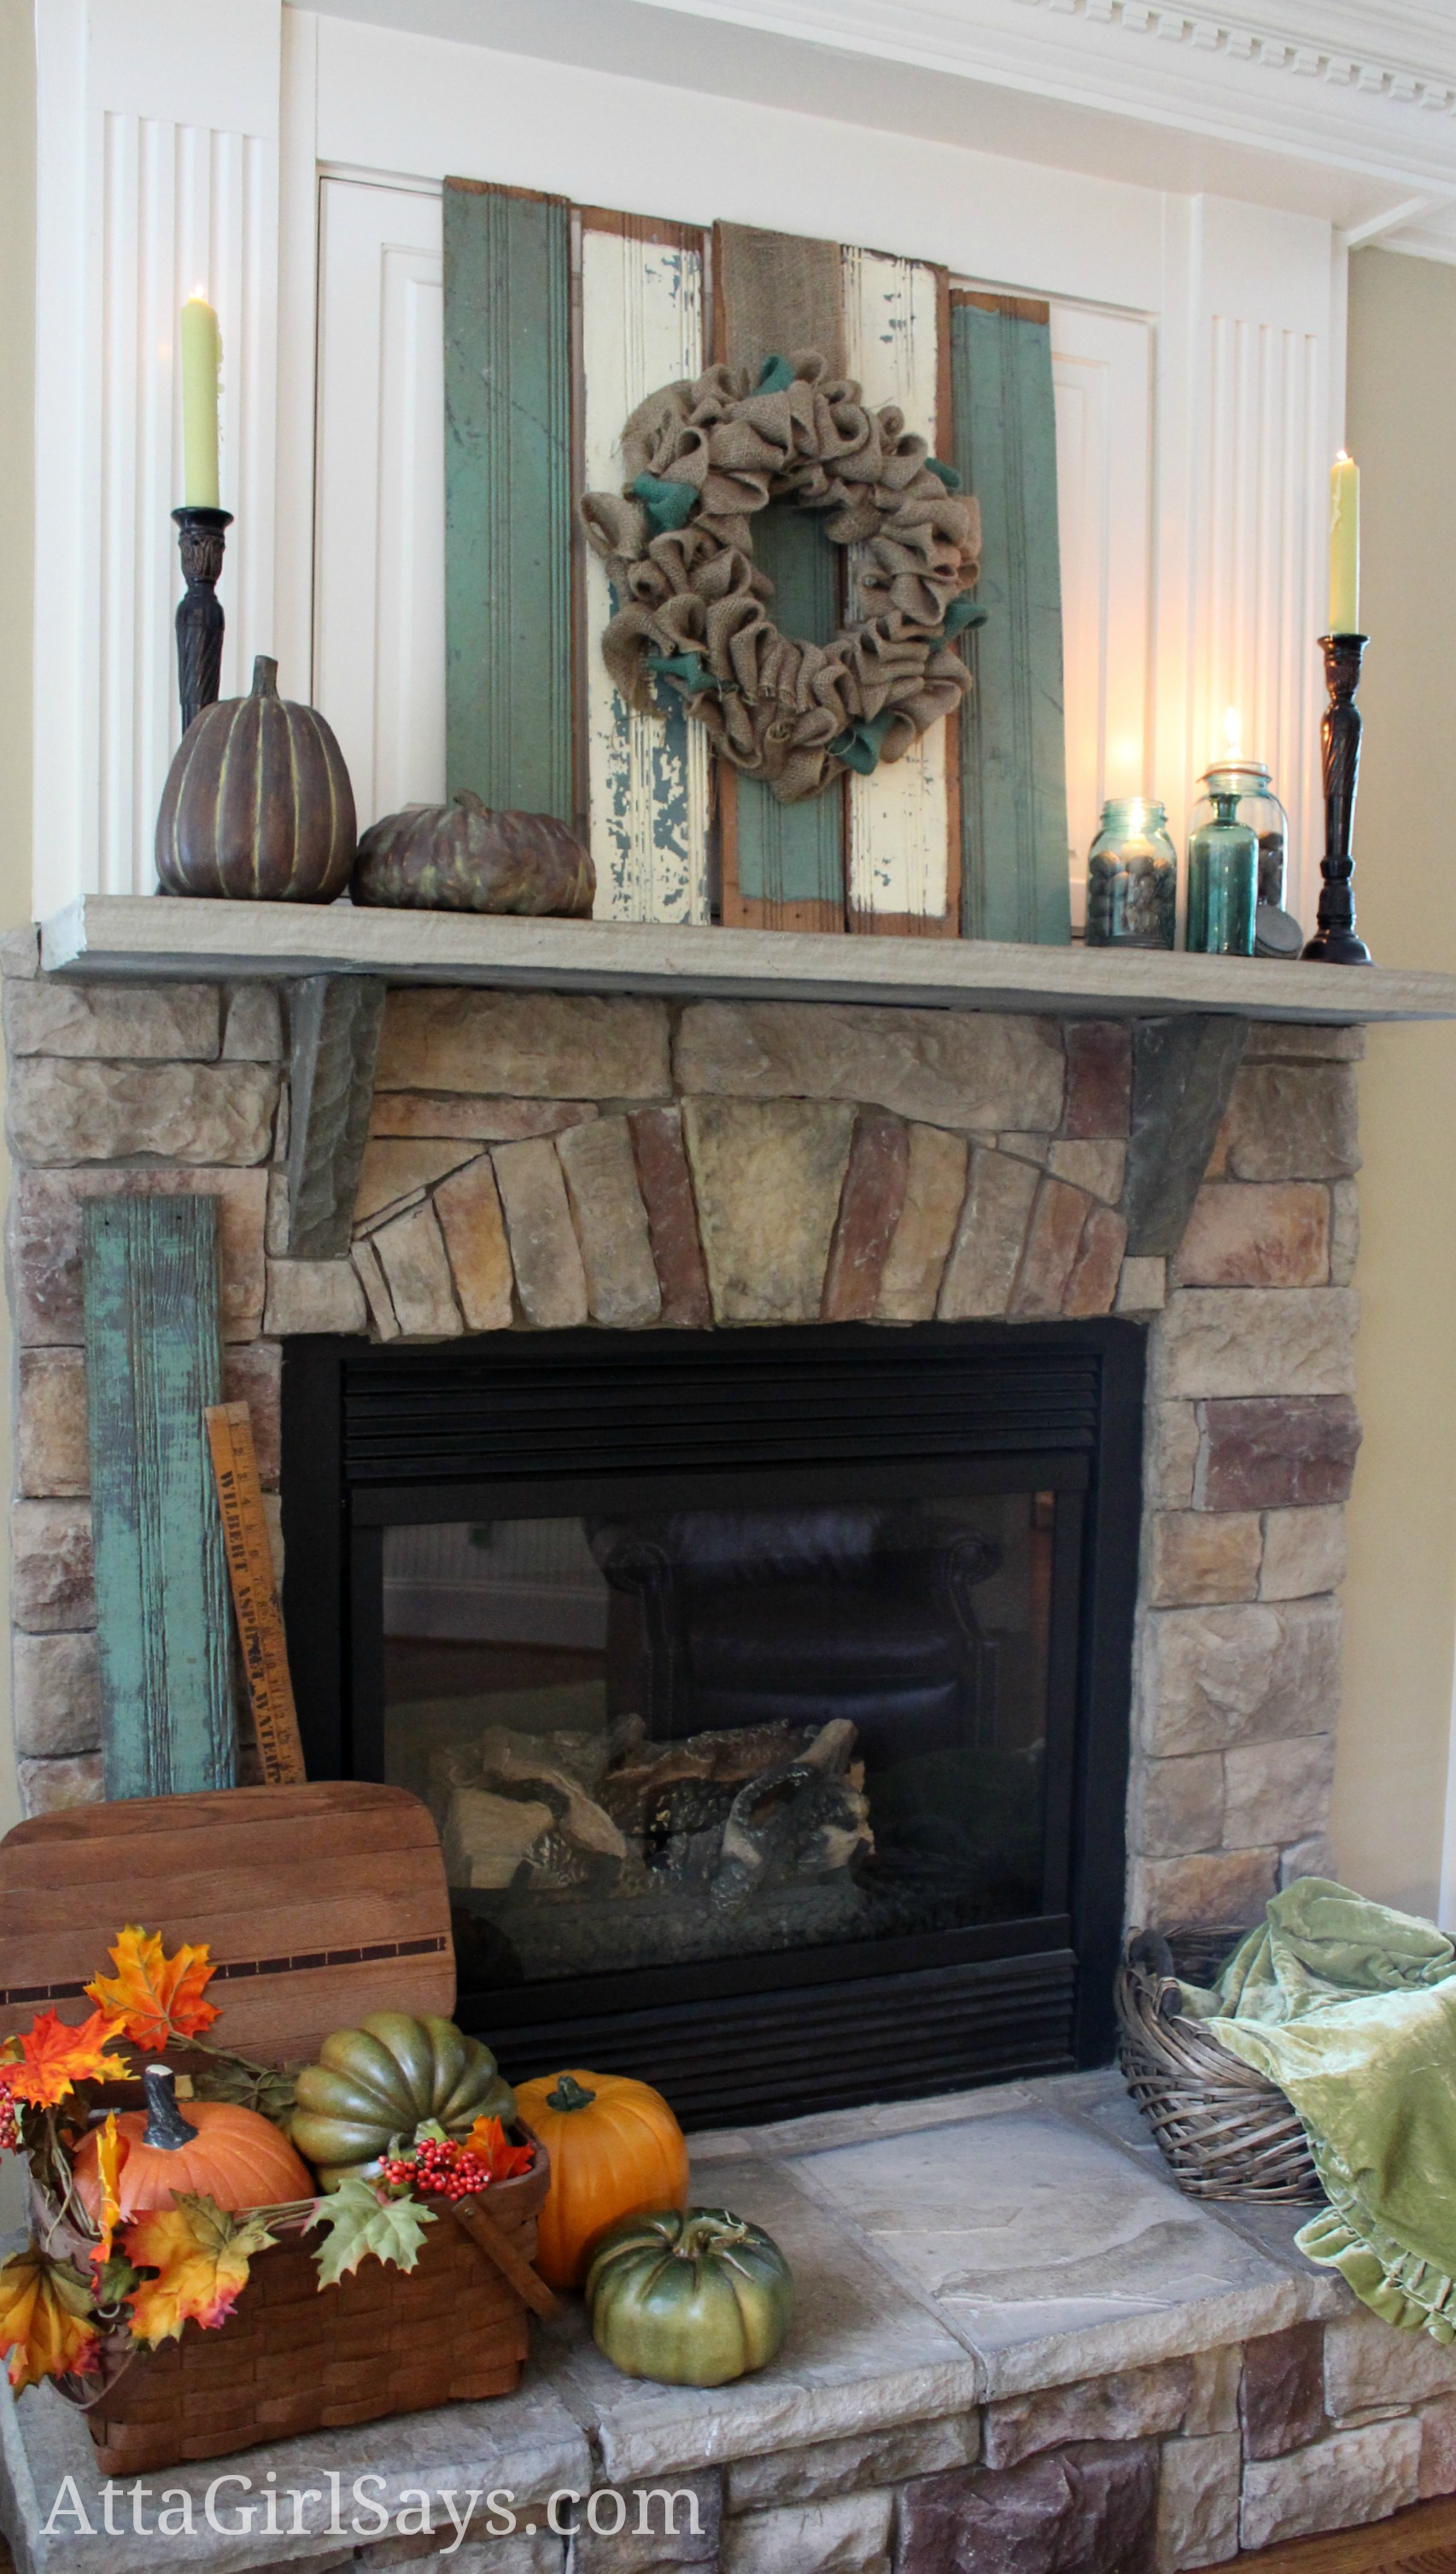 Rustic, Recycled & Natural Fall Fireplace Mantel Ideas